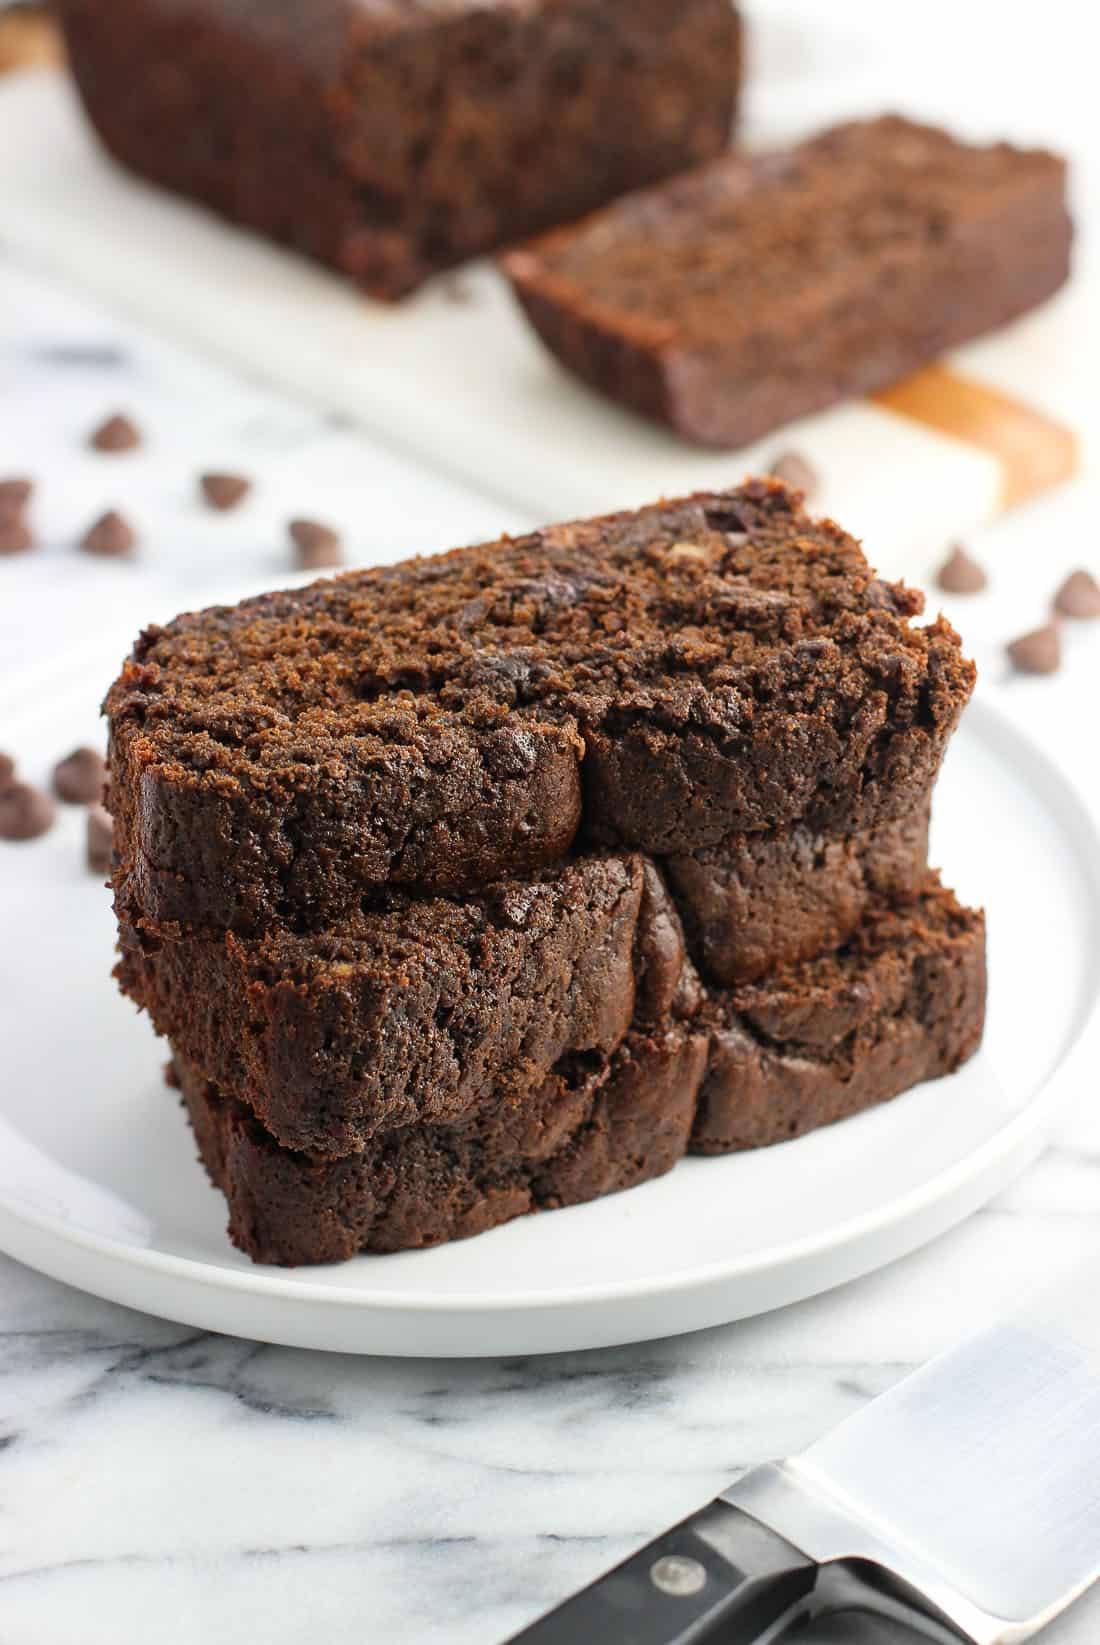 Chocolate malted banana bread is moist with rich chocolate and roasty malted flavor. This more decadent take on banana bread isn't overly sweet, but would make a wonderful sweet snack or dessert.